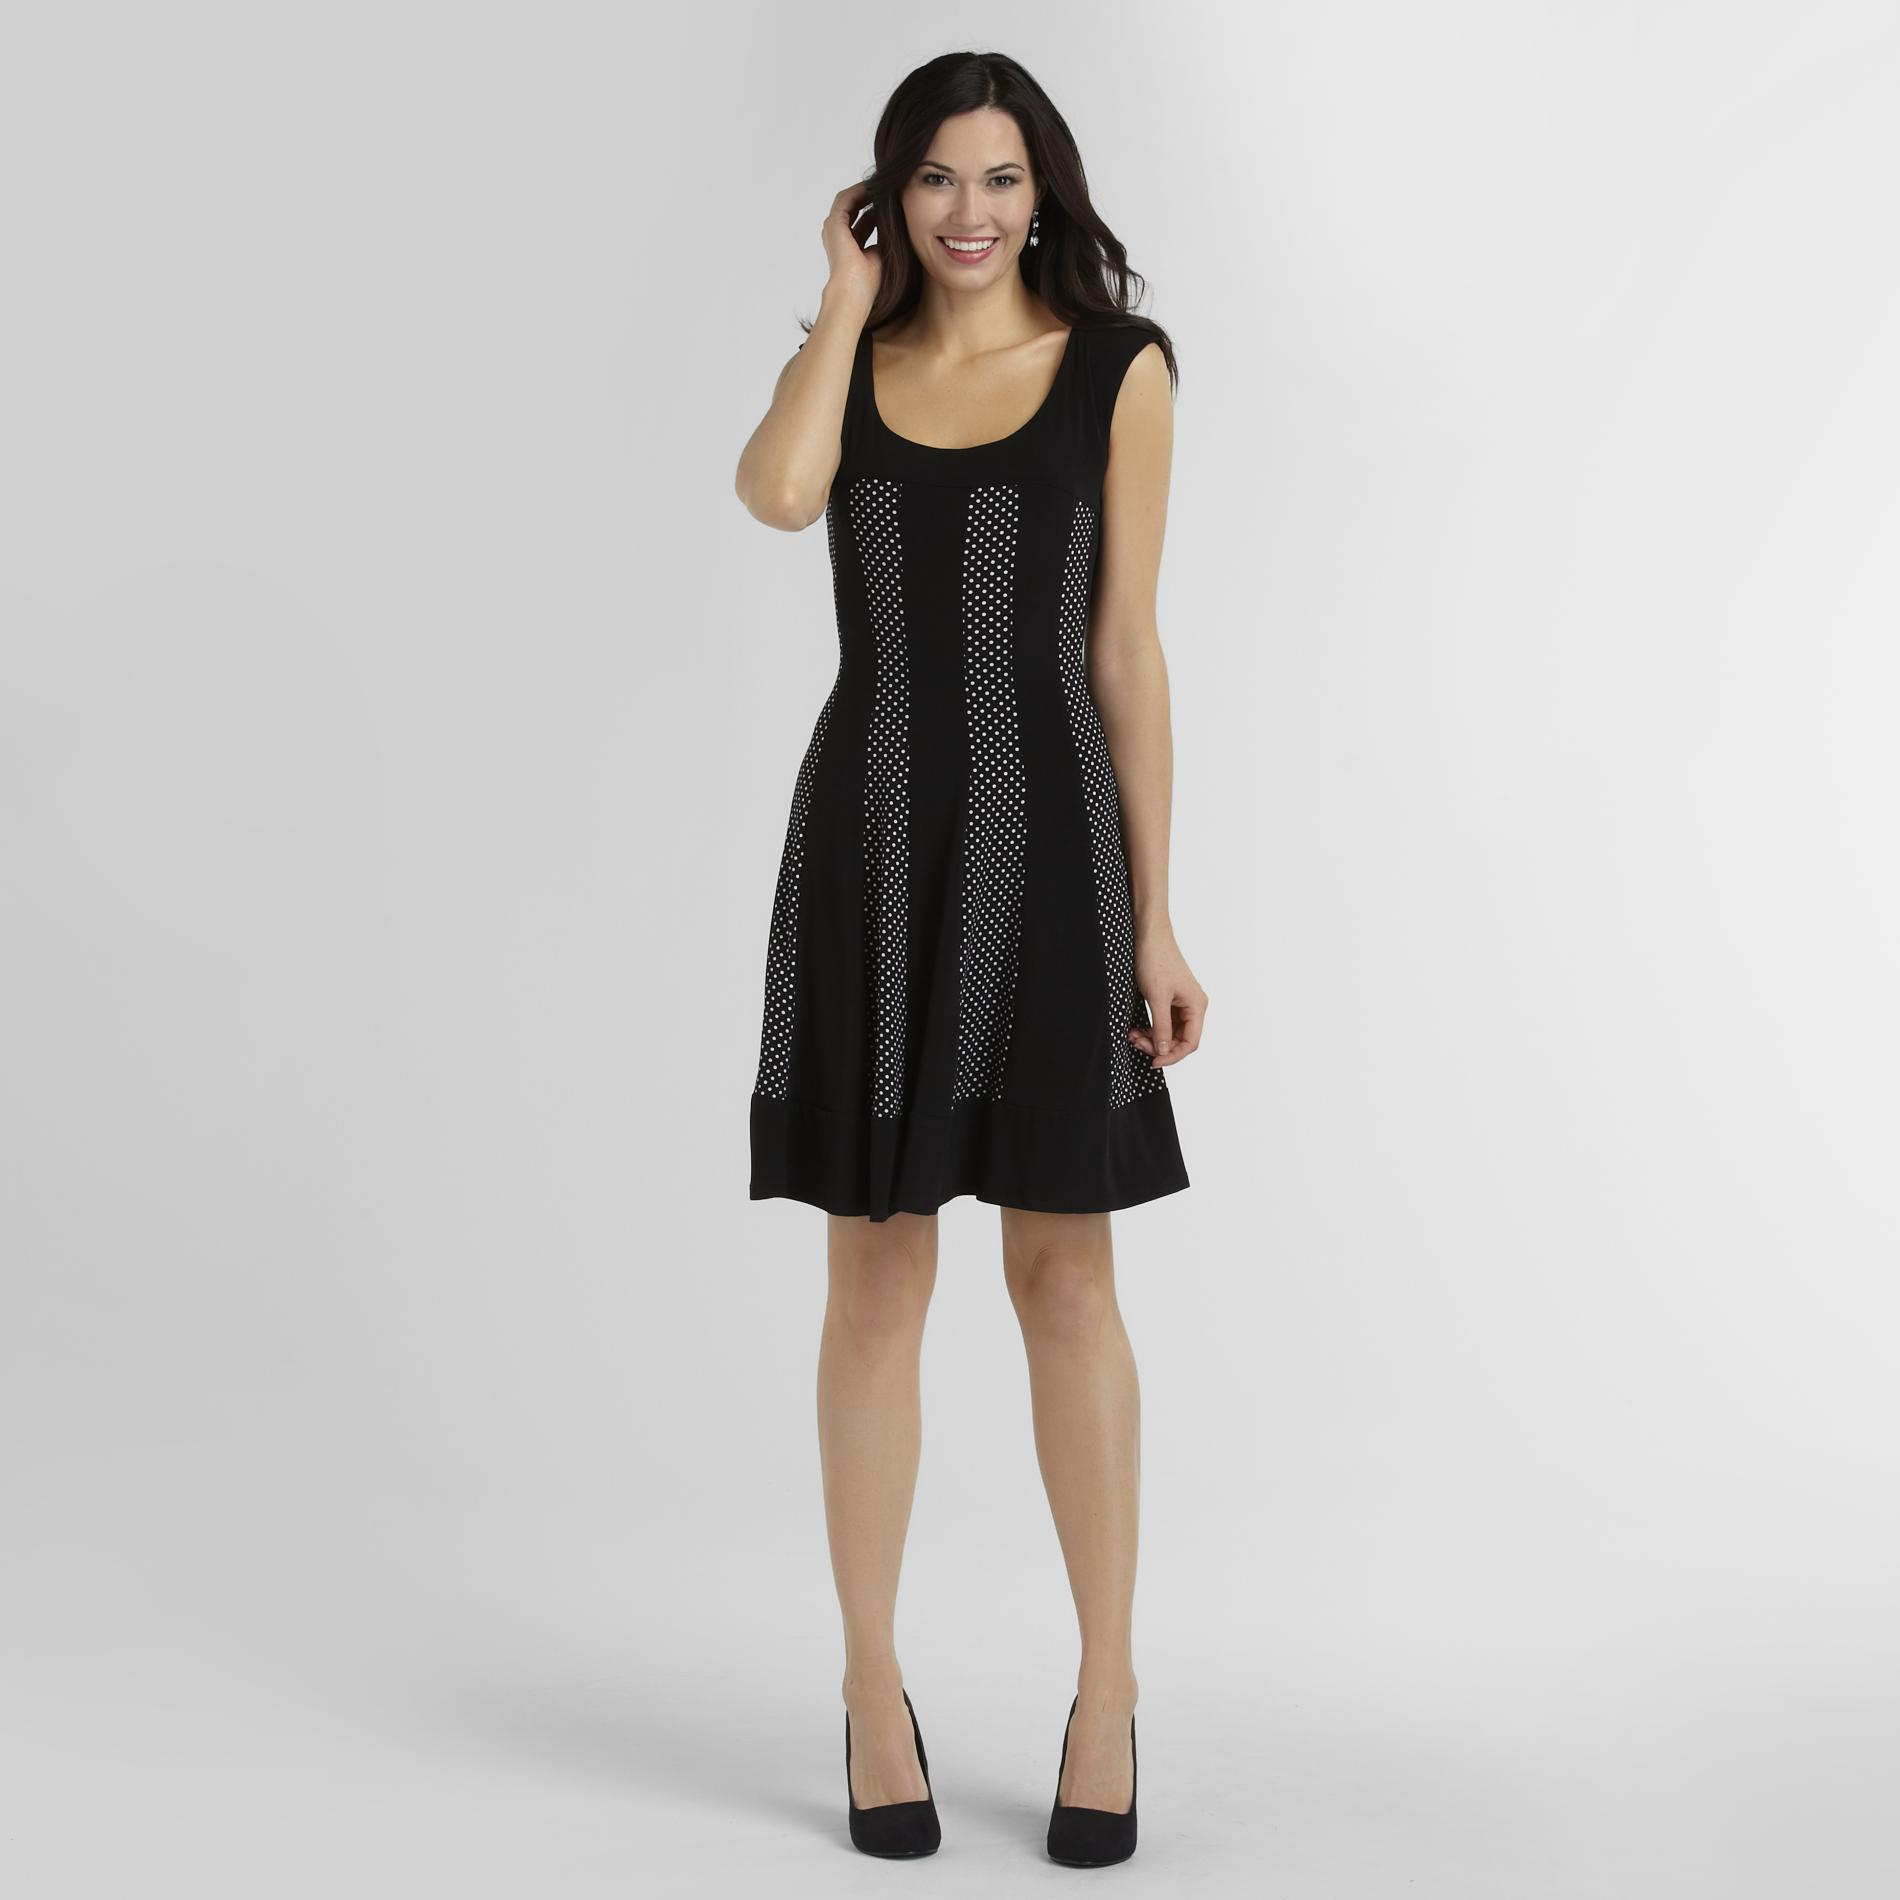 Connected Apparel Women's Sleeveless Party Dress at Sears.com